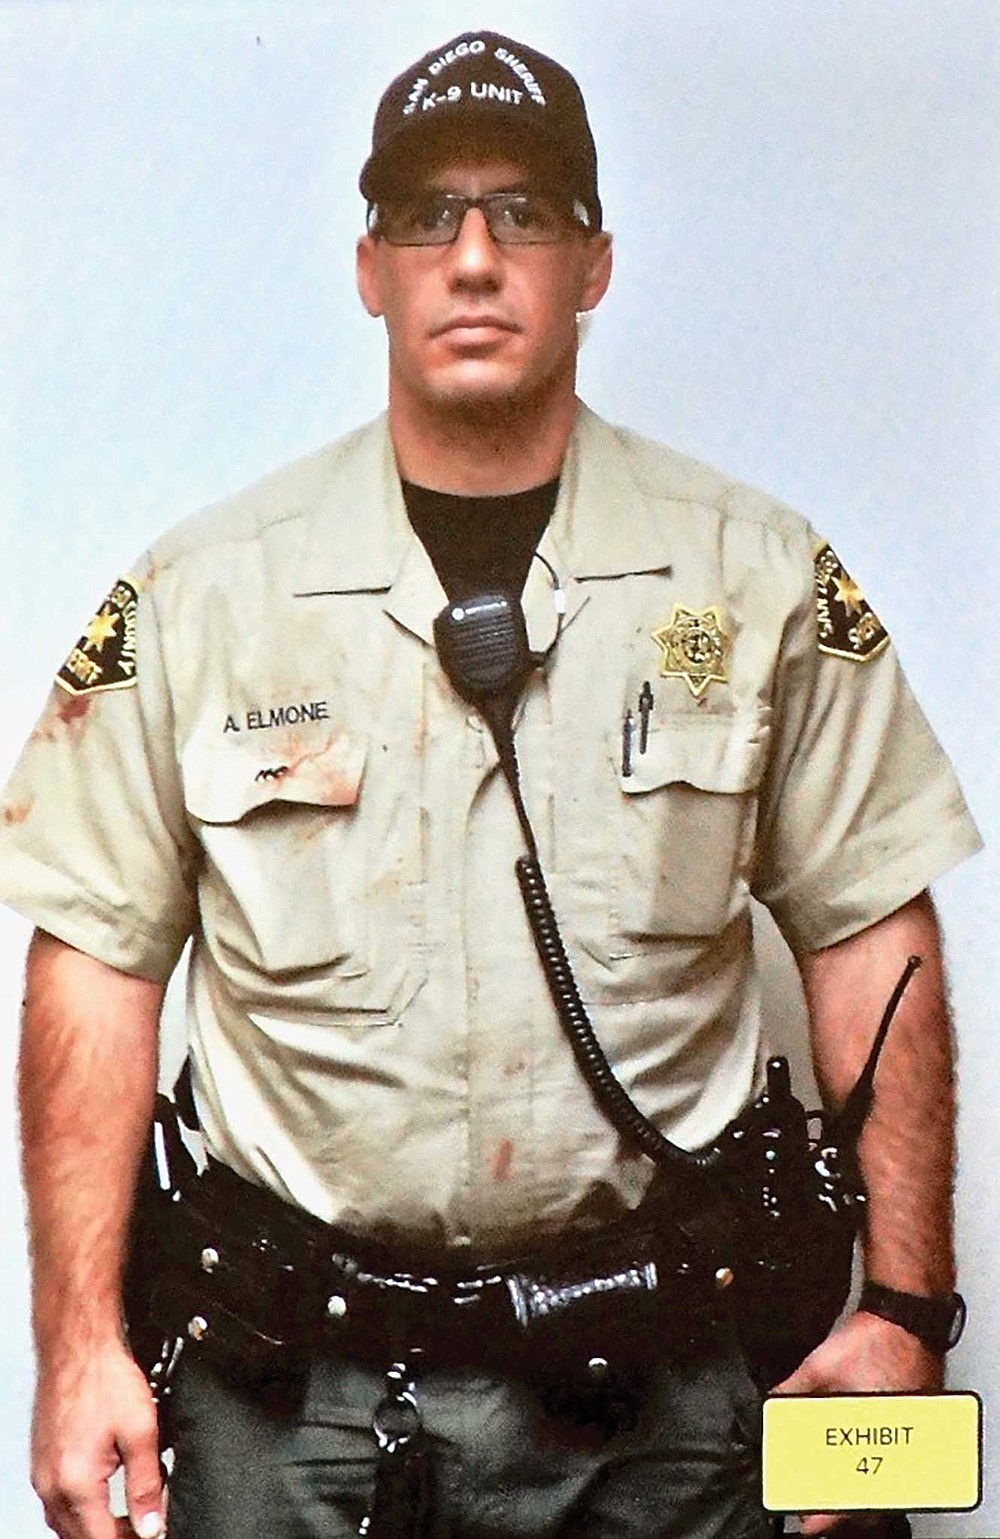 Deputy Elmone had blood from his dog on his uniform, after he carried the dog away.